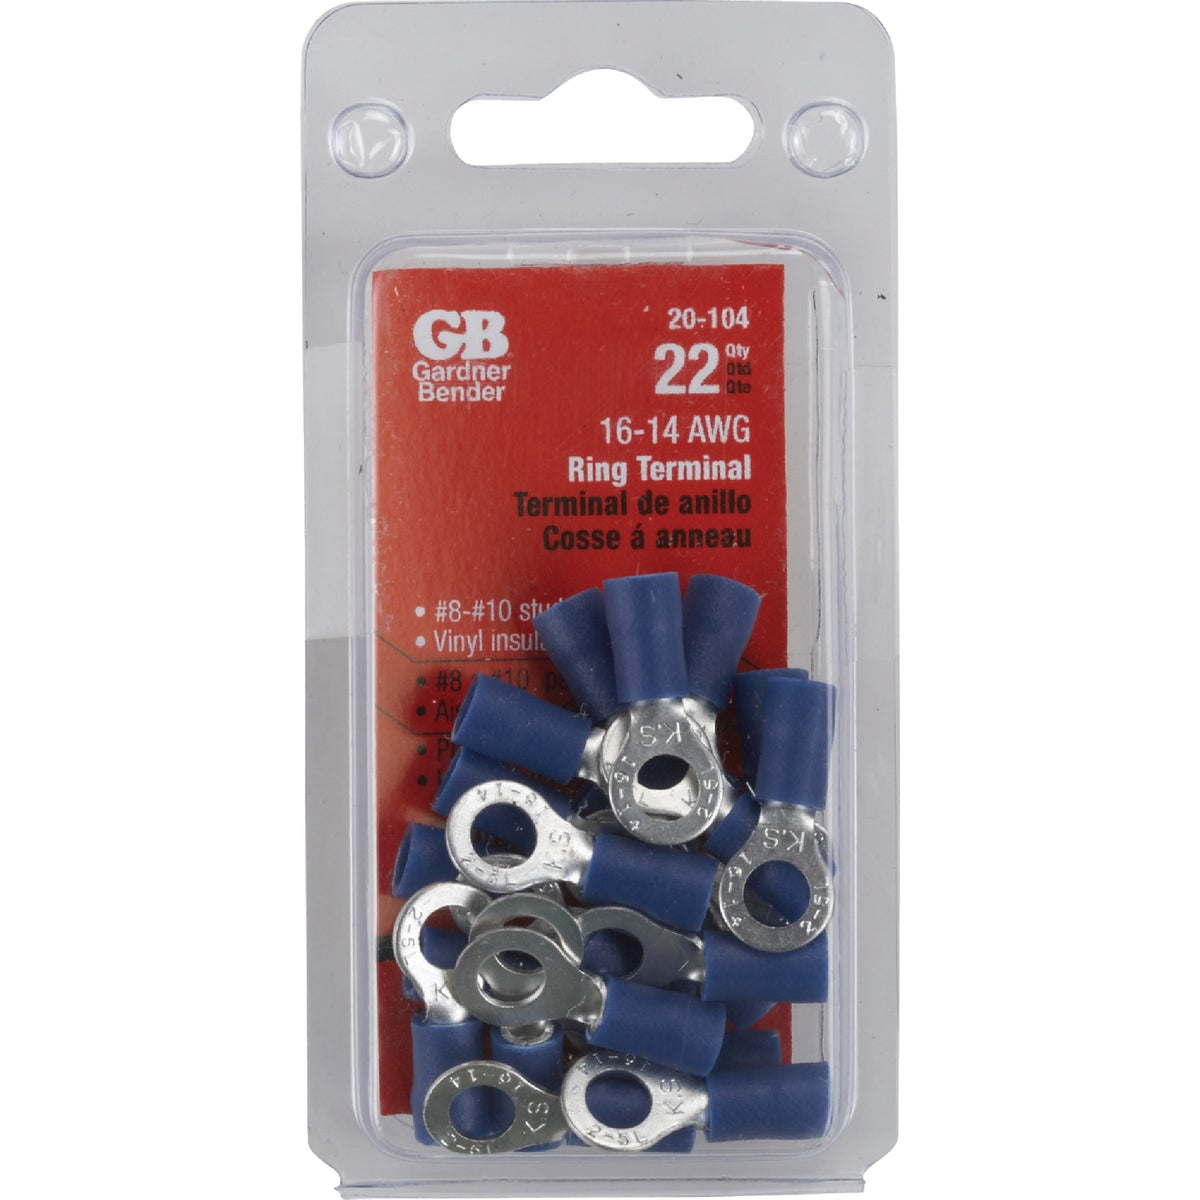 GB Electrical 16-14 RING TERMINAL 20-104